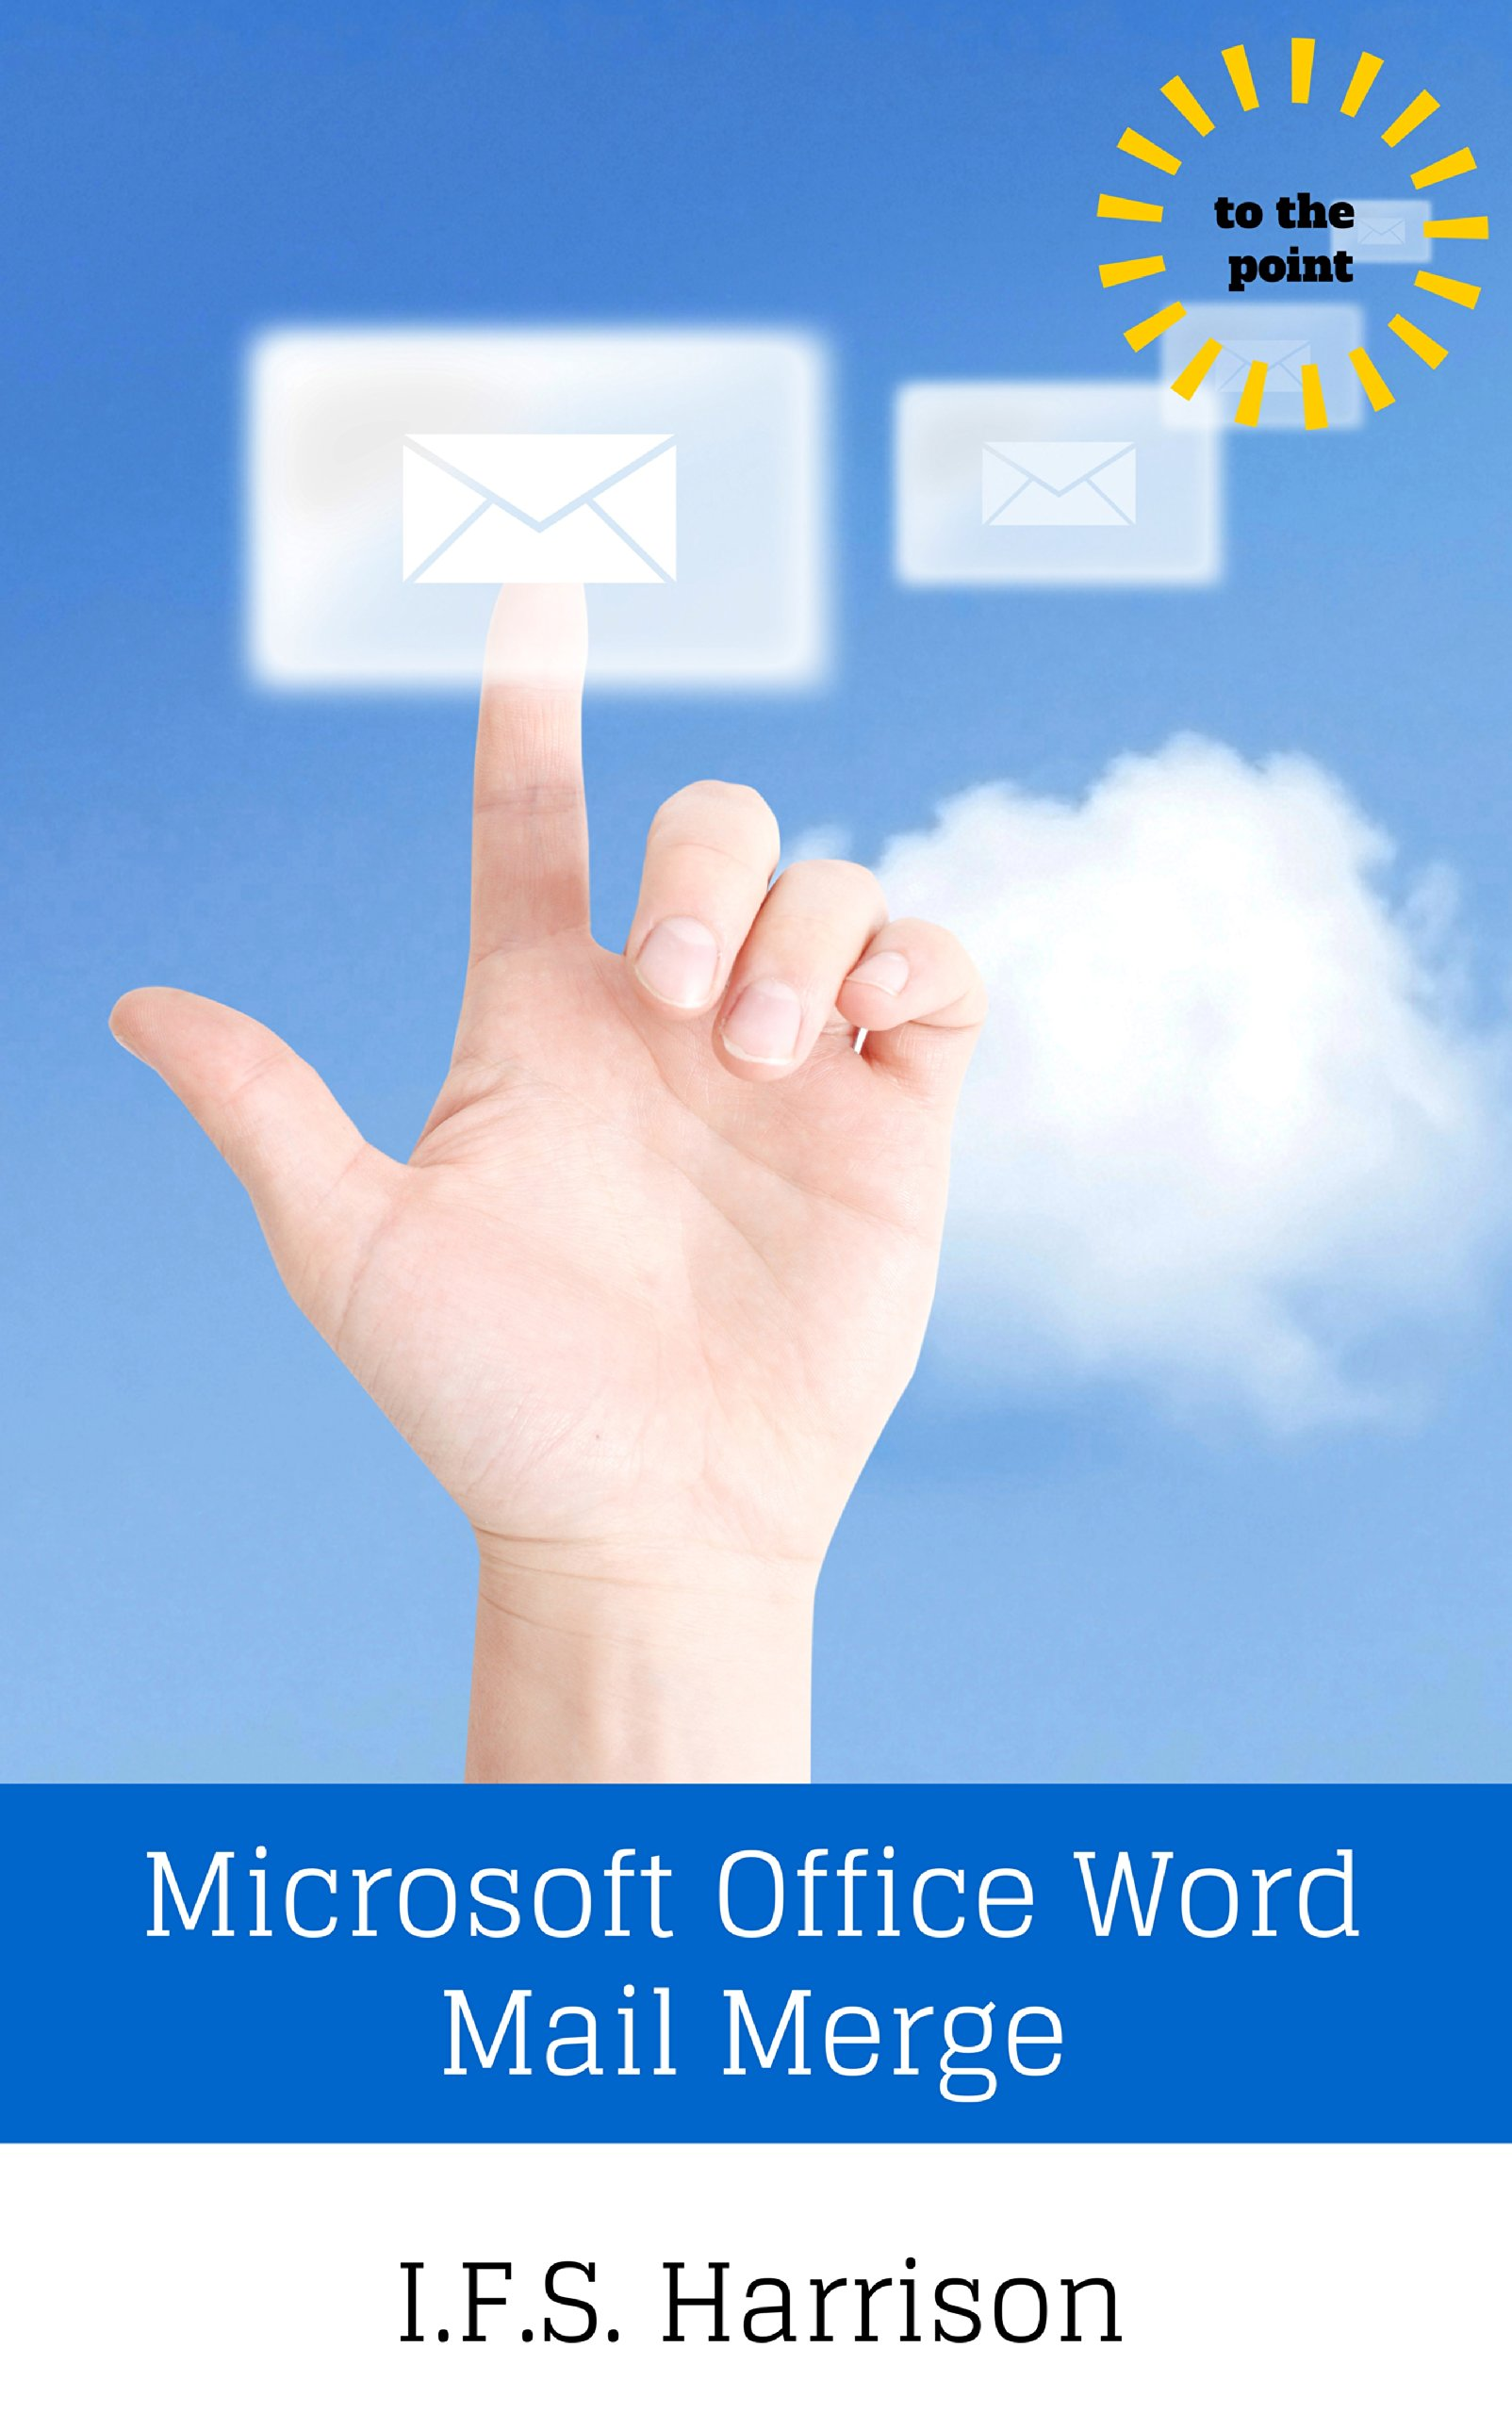 Microsoft Office Word Mail Merge (To The Point Book 12)